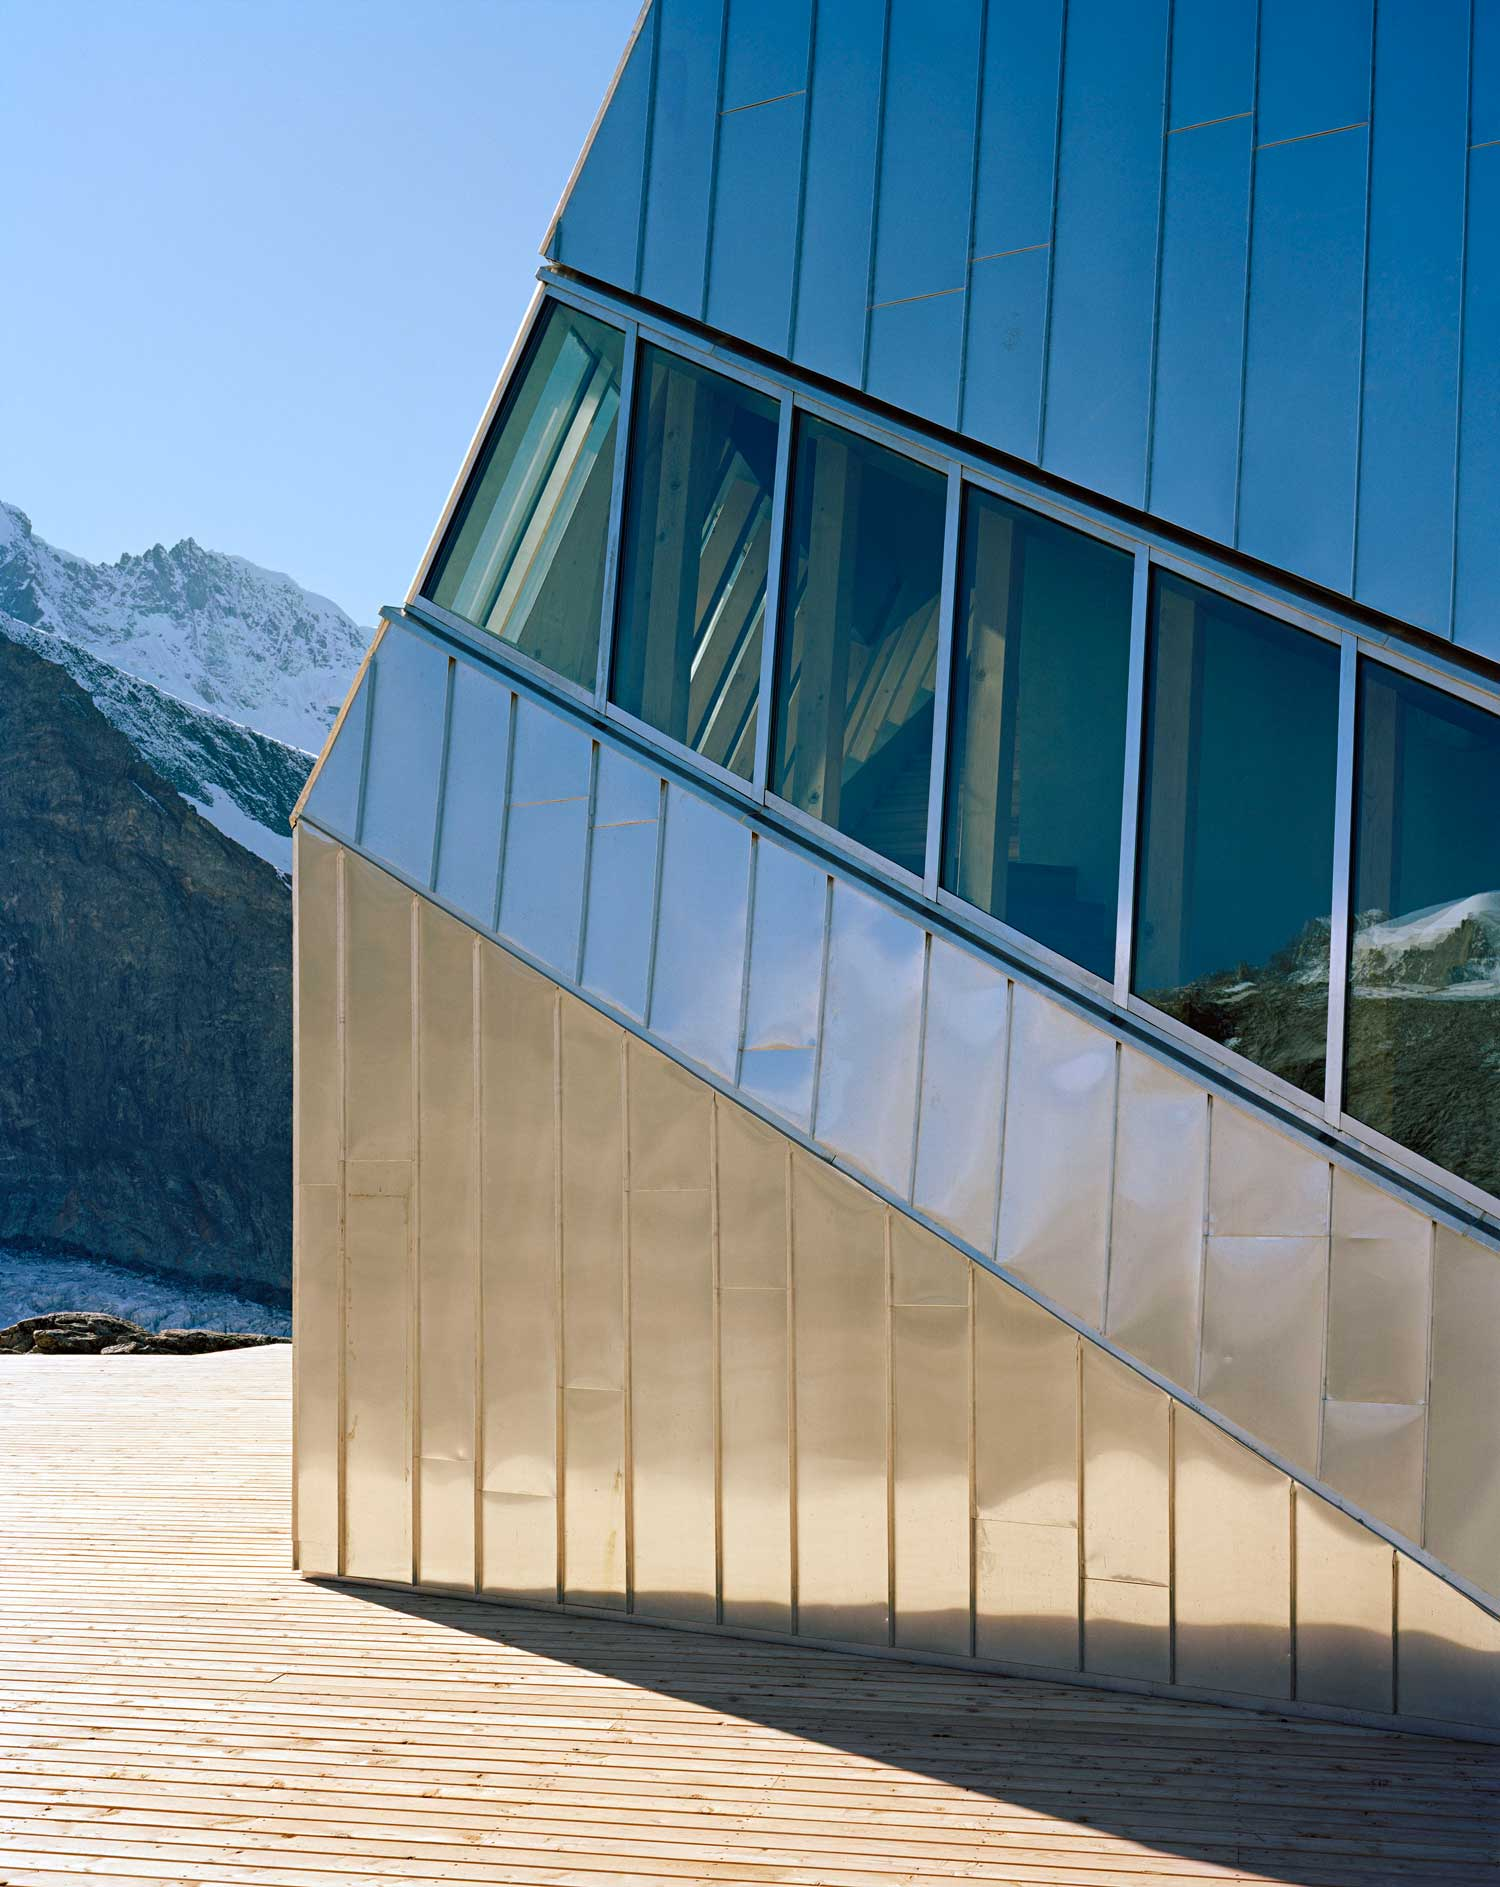 Monte Rosa Hut in Switzerland by Bearth & Deplazes Architekten | Yellowtrace